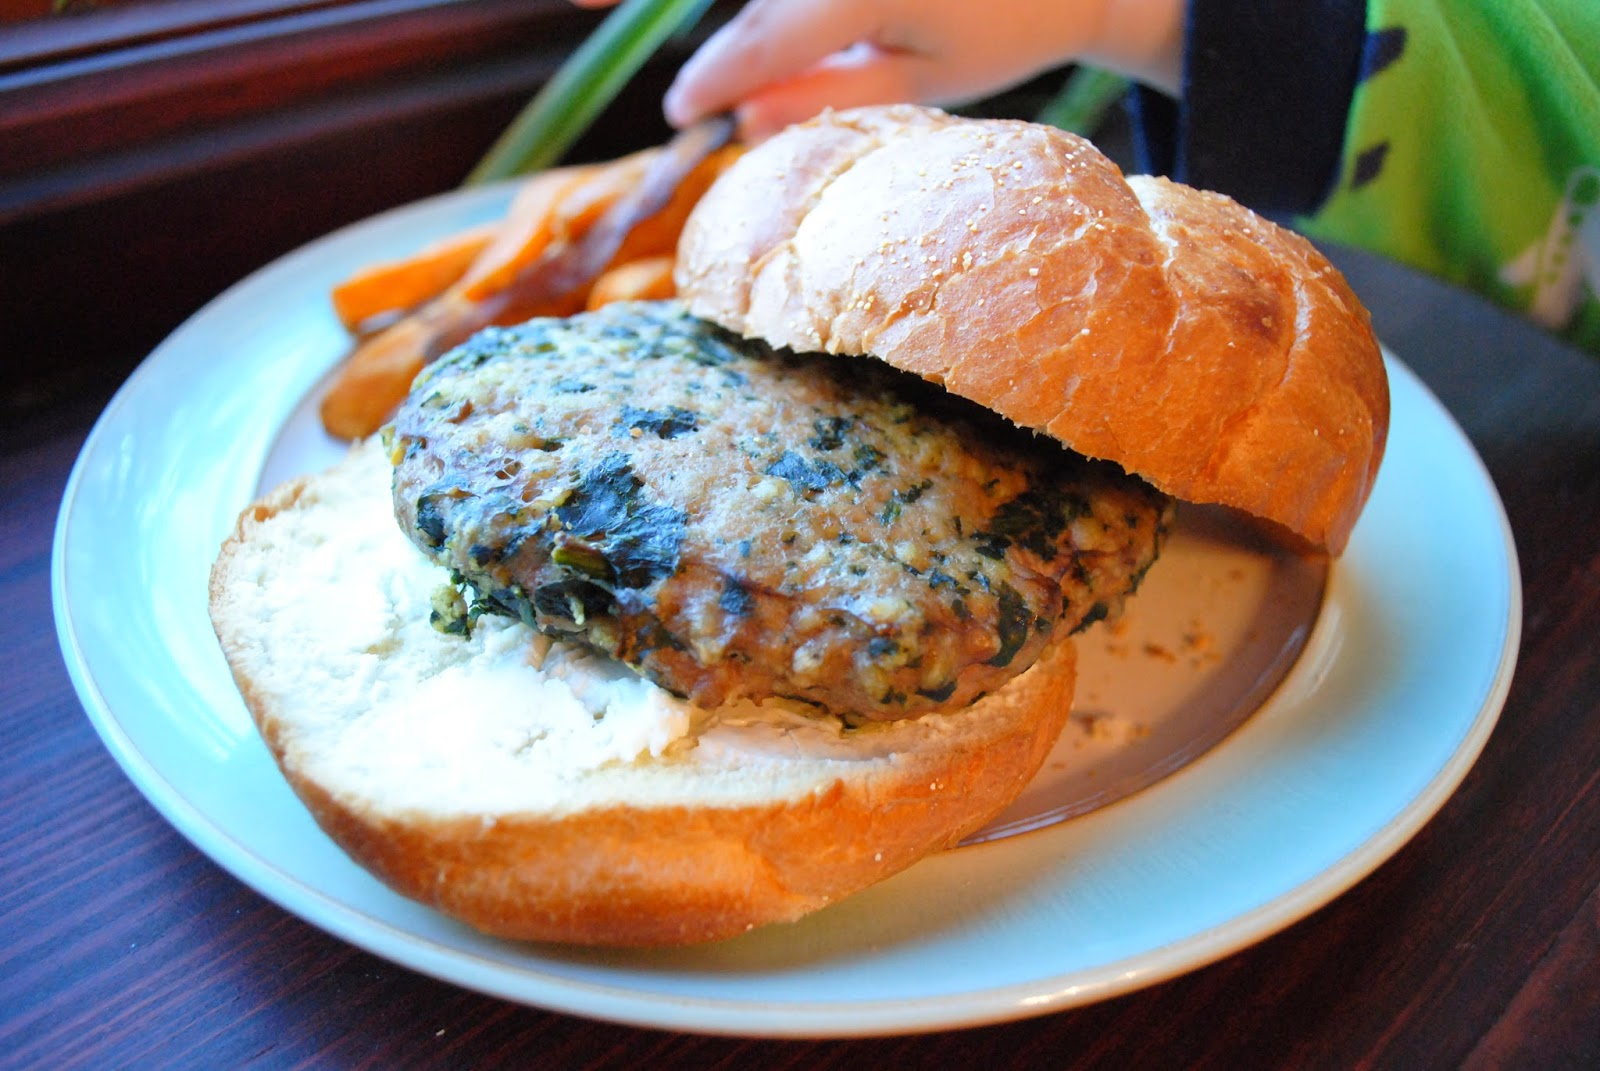 At home with ann spinach turkey burgers with goat cheese for How long to cook turkey burgers in oven at 400